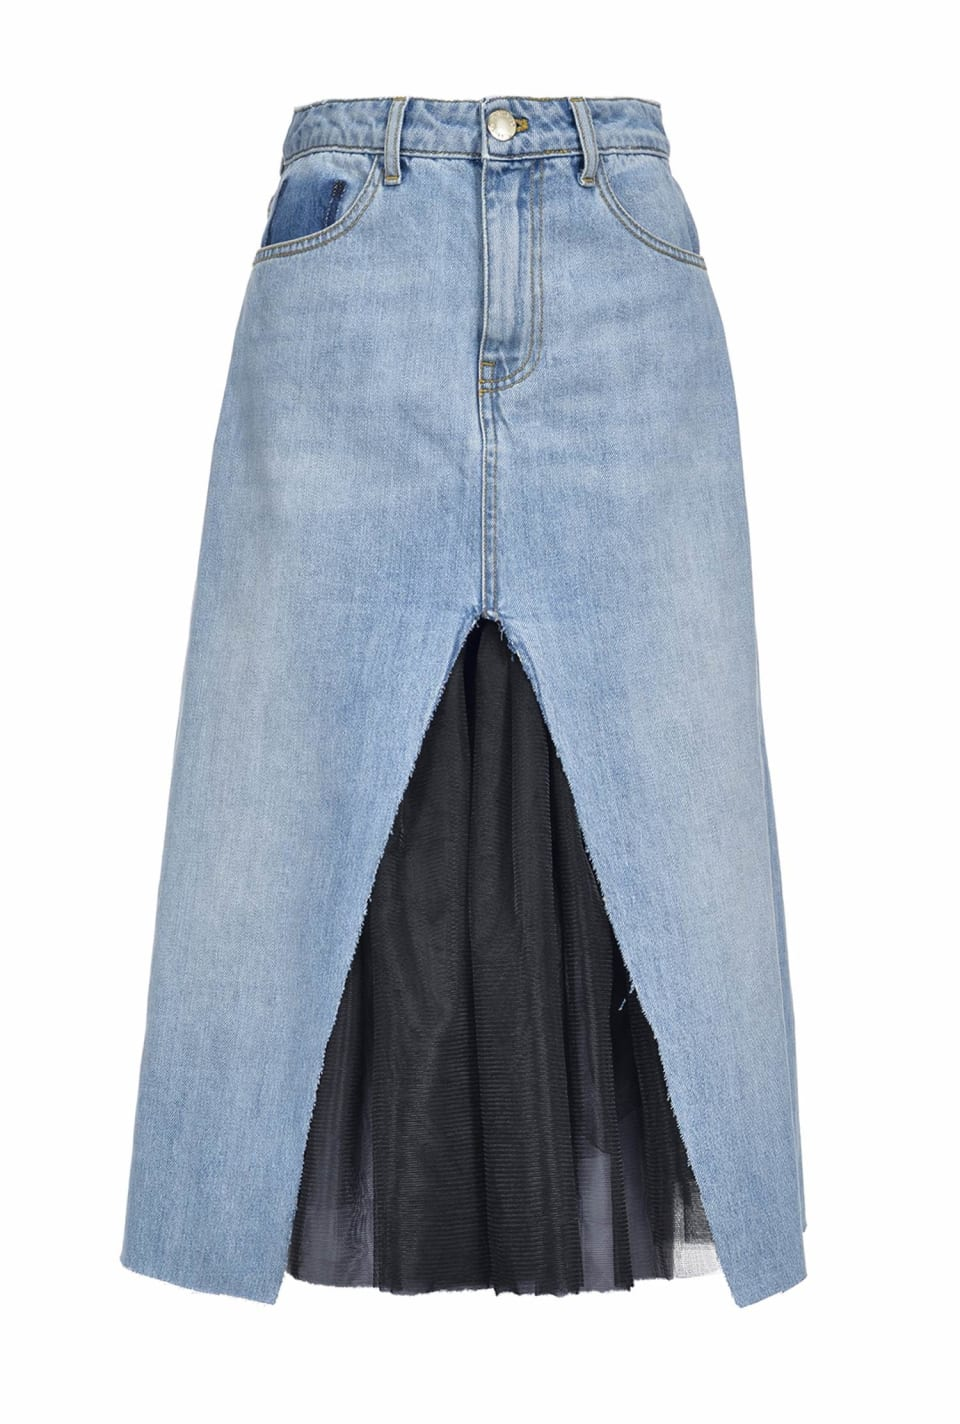 Gonna in denim e tulle